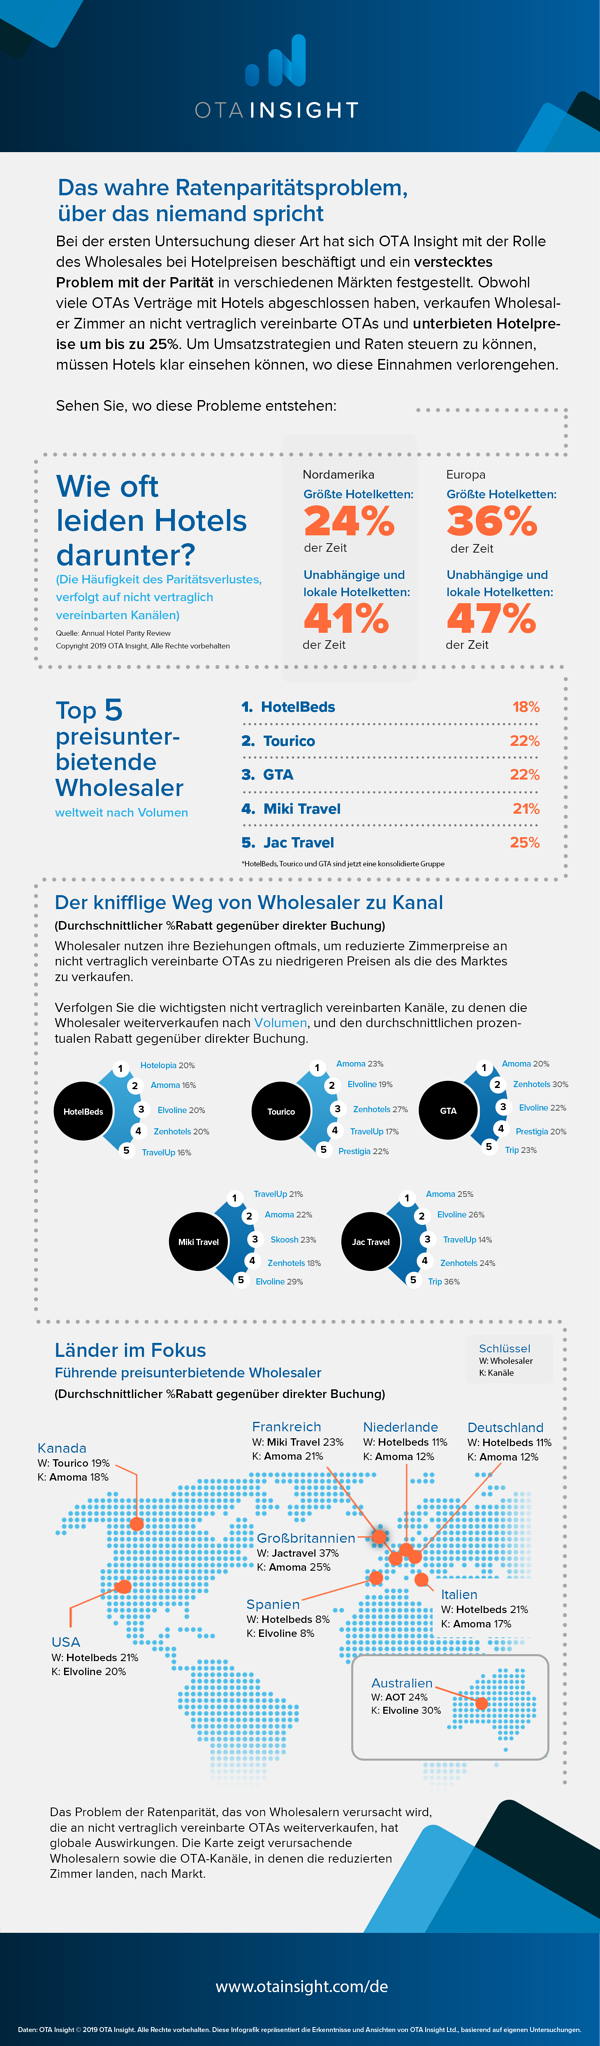 Infographic-german-parity-blog-image